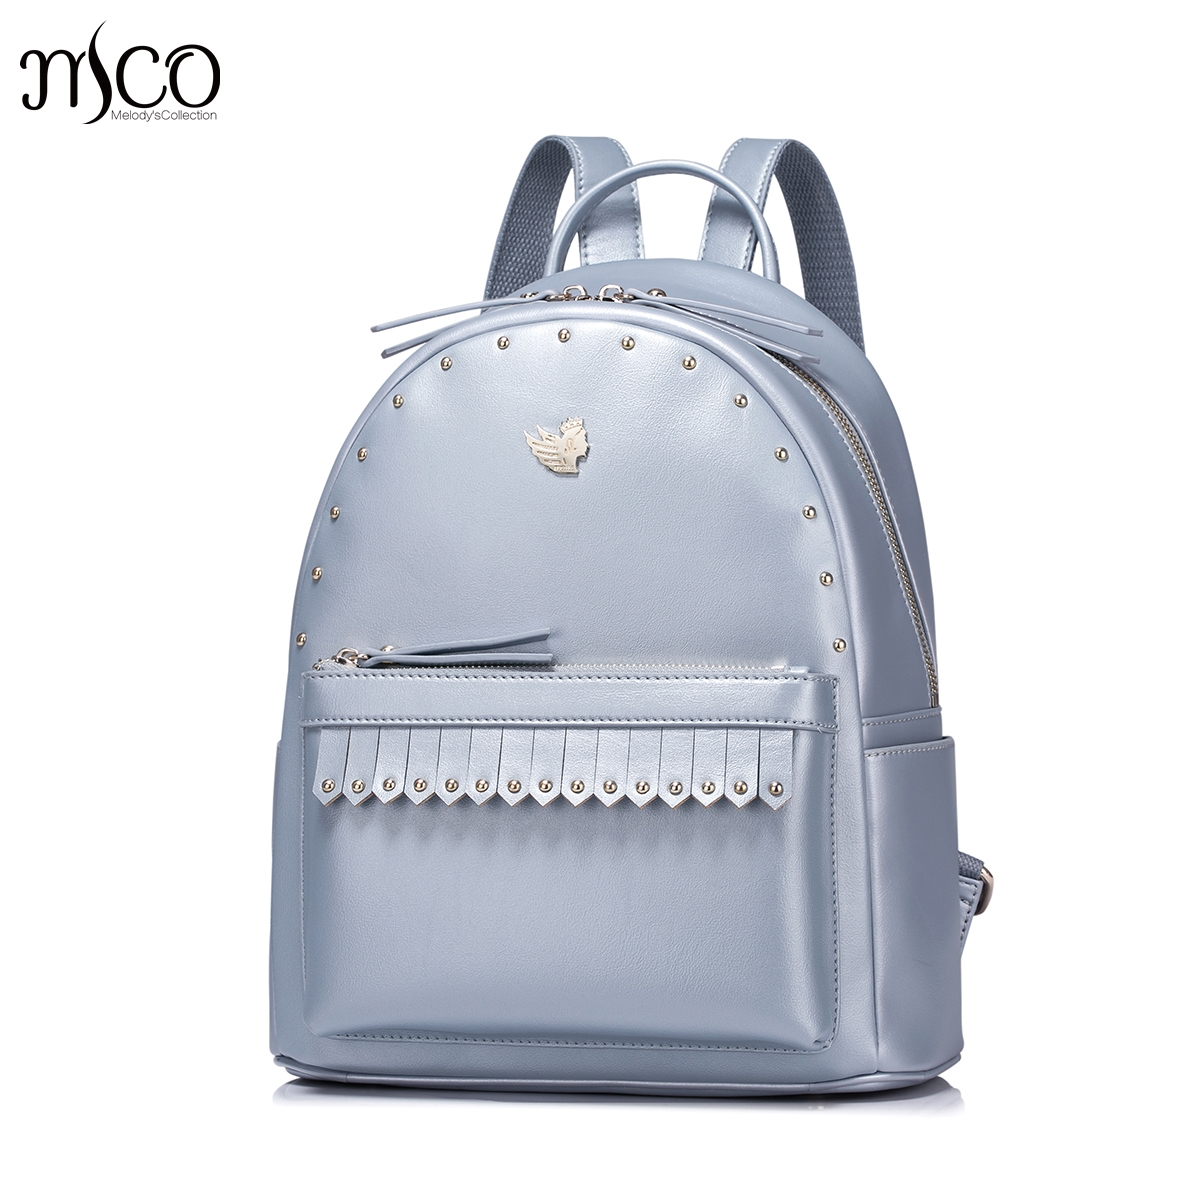 Women PU Leather Backpack Fashion Tassel Female Daily Shoulder Bags Ladies Daypack gilrs Schoolbag Rivet Elegant Travel Rucksack free shipping backpack women white and black travel pu leather backpacks ladies fashion female rucksack back bags